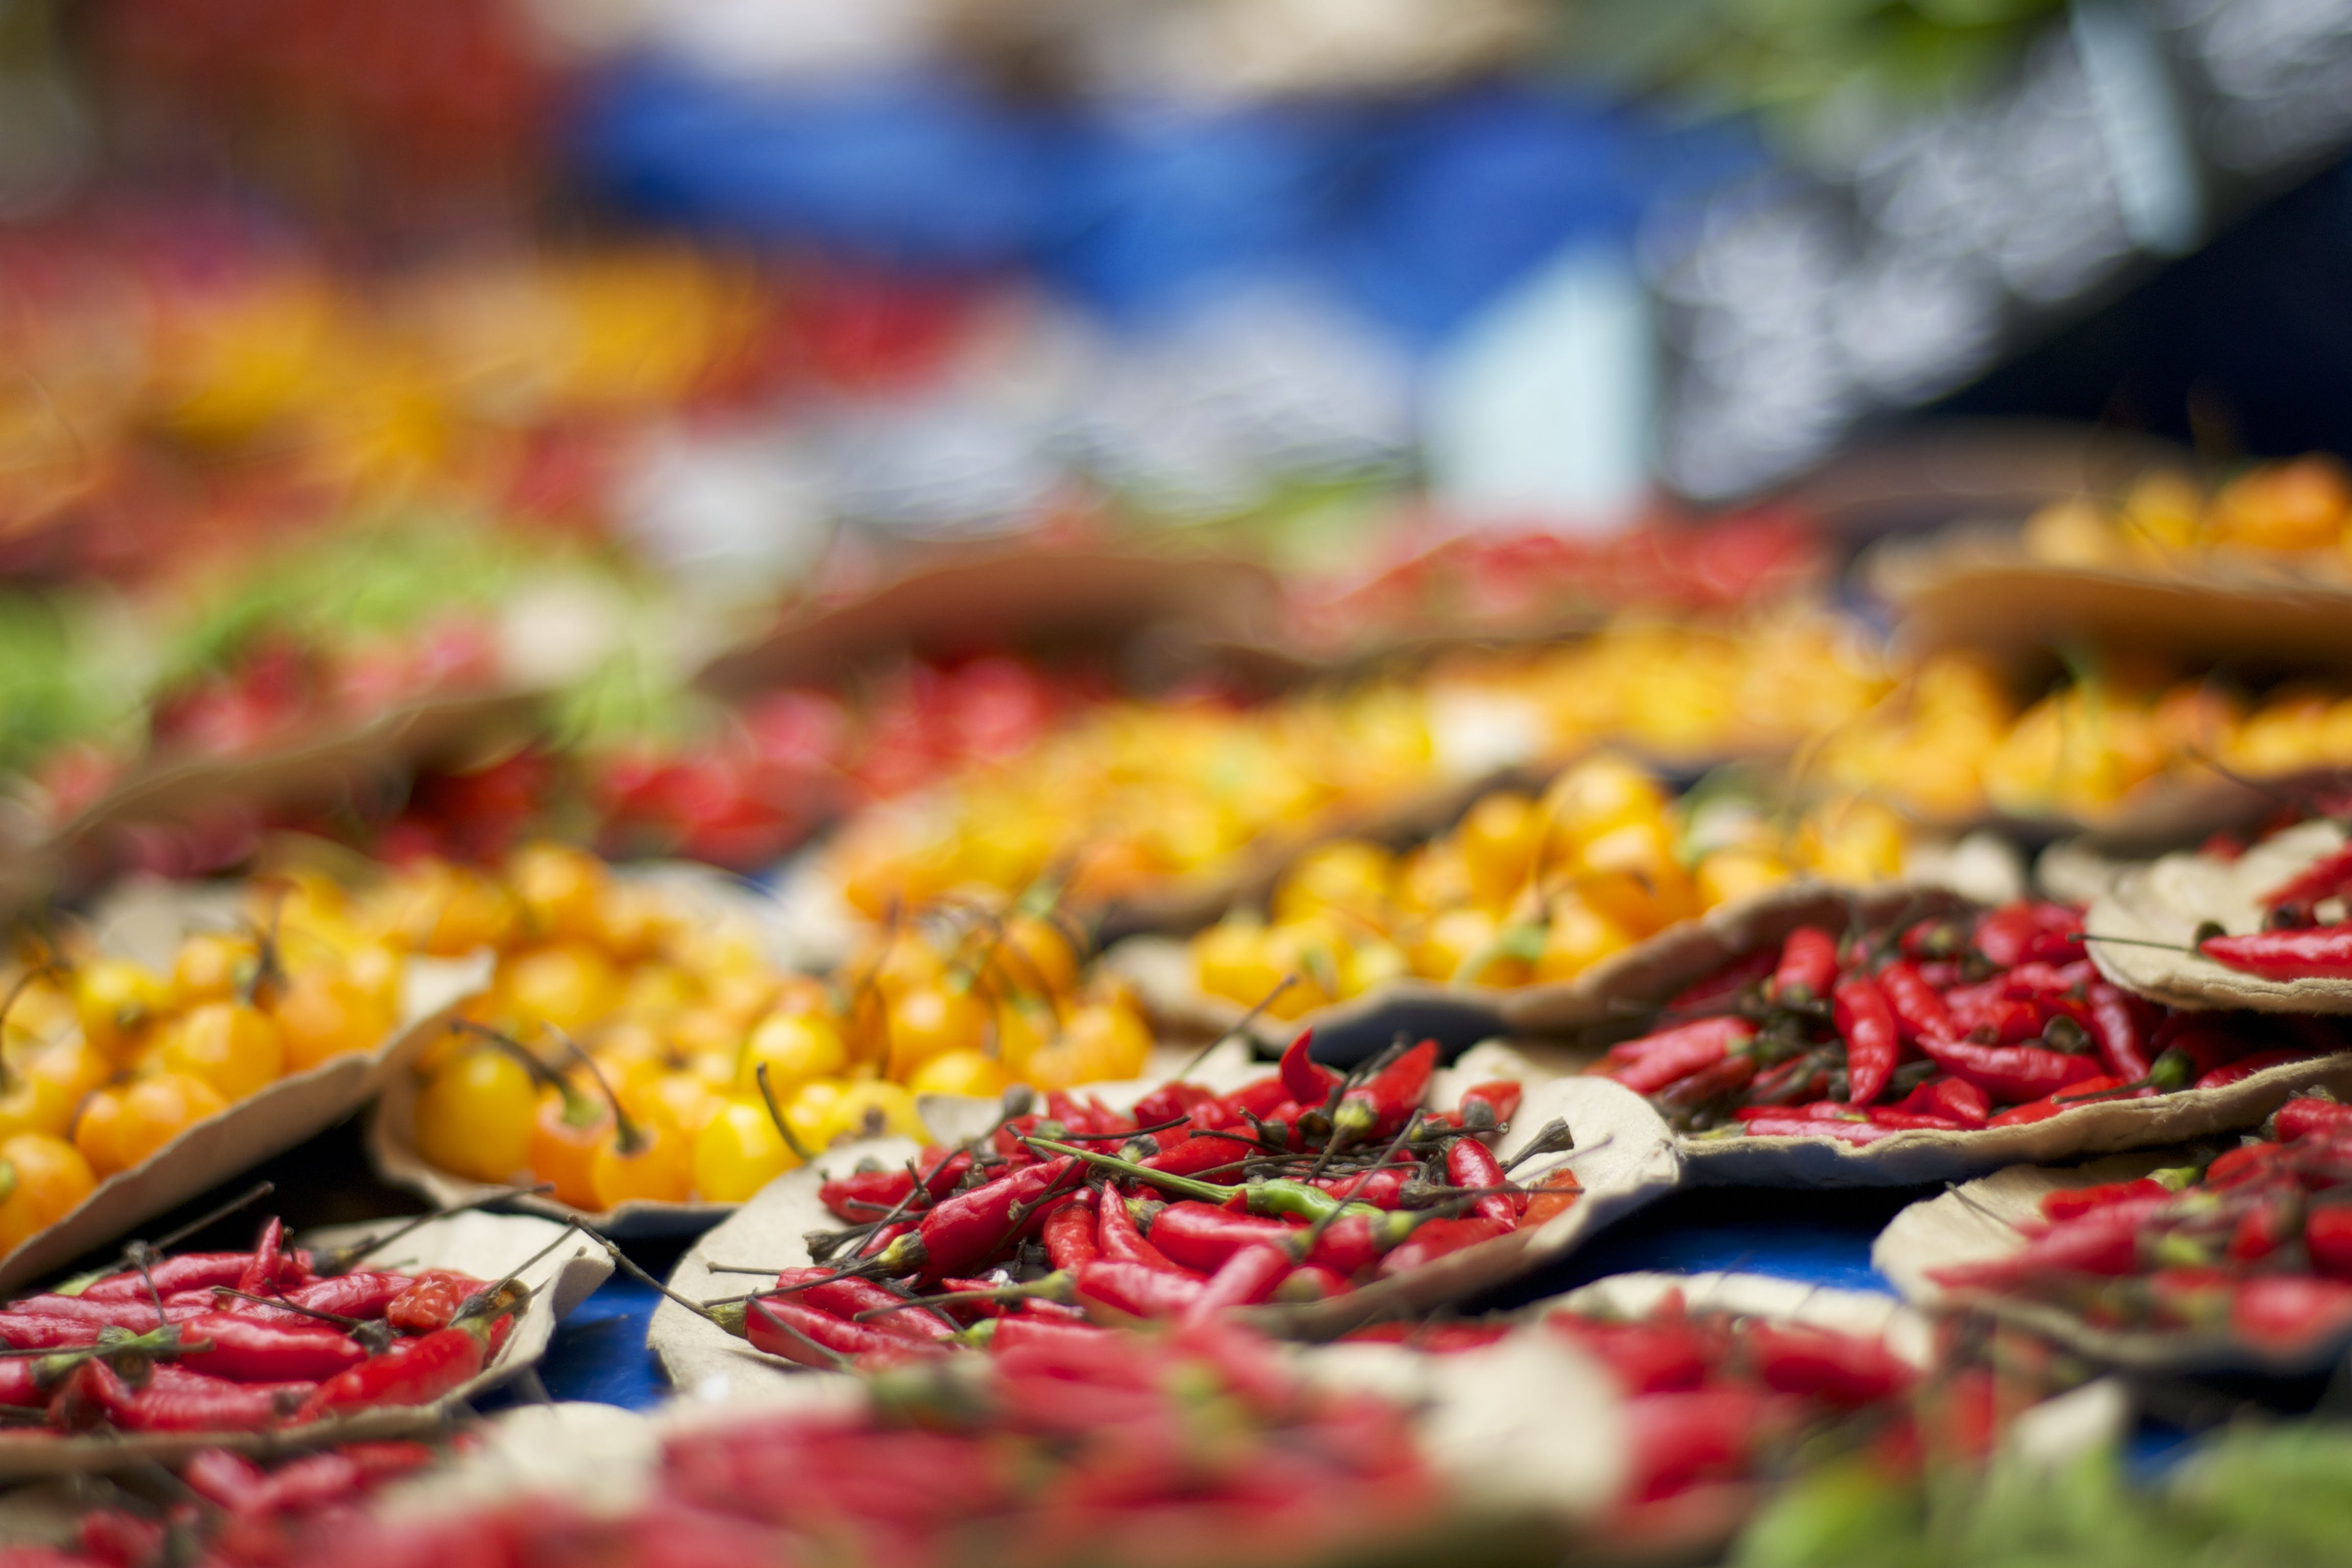 Selective Focus Photography of Bunch of Chilies